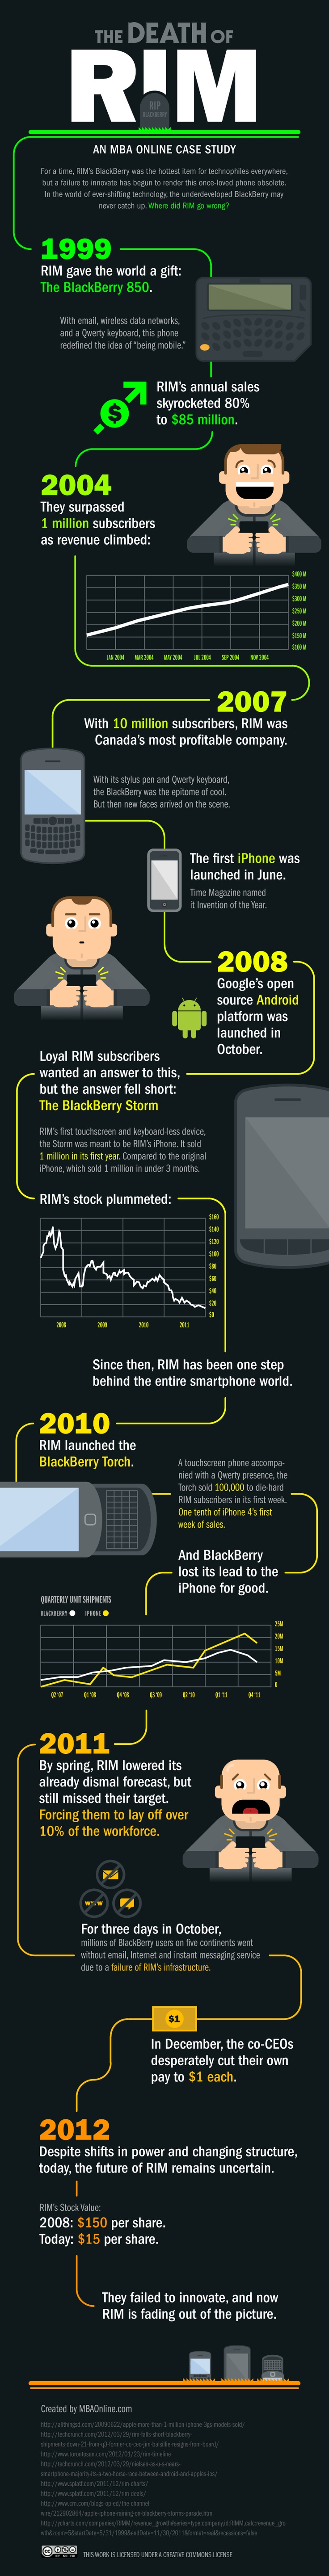 The not so slow death of RIM